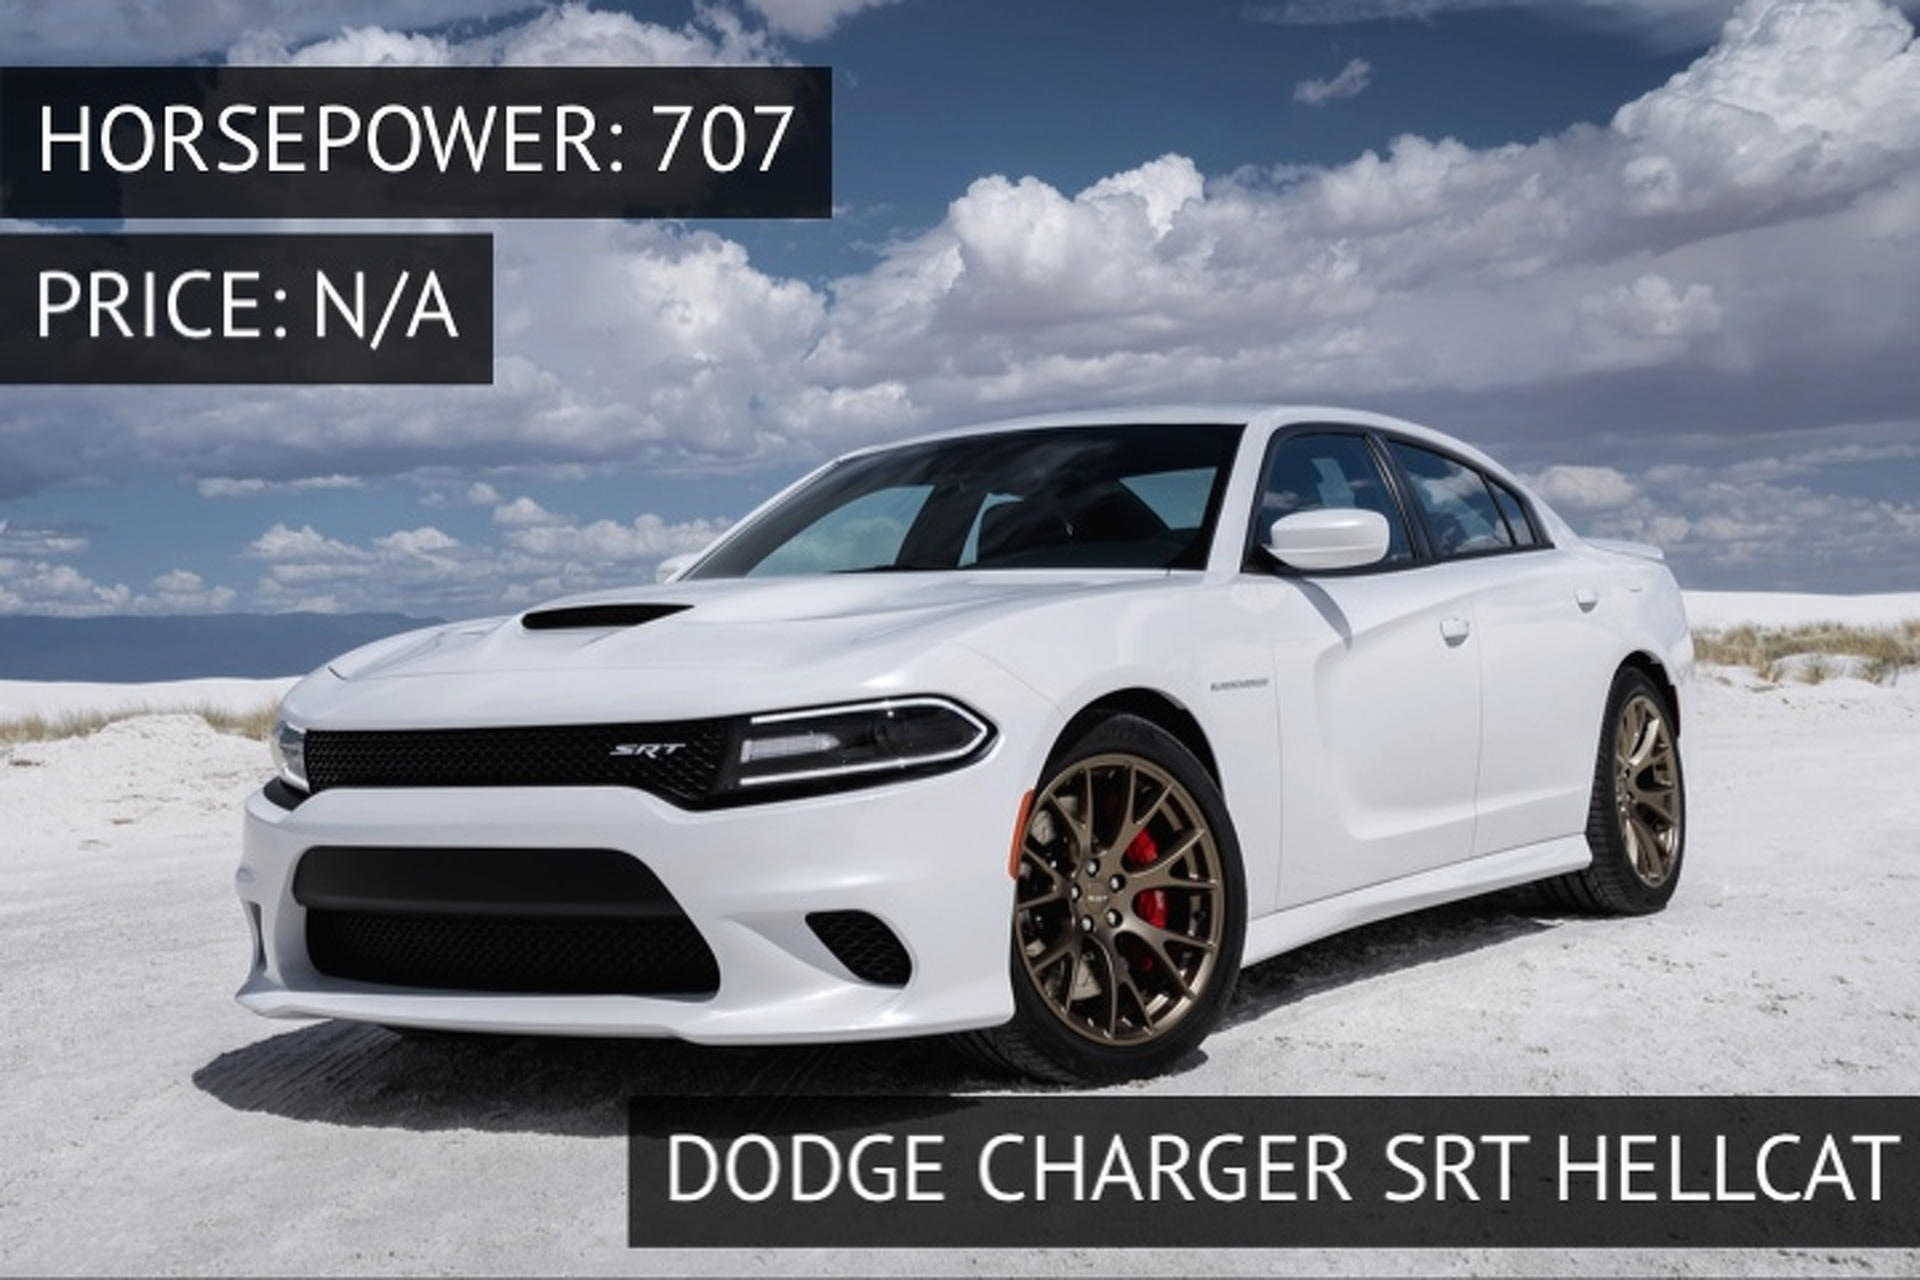 Dodge Charger Hellcat vs Challenger Hellcat Which Would You Rather